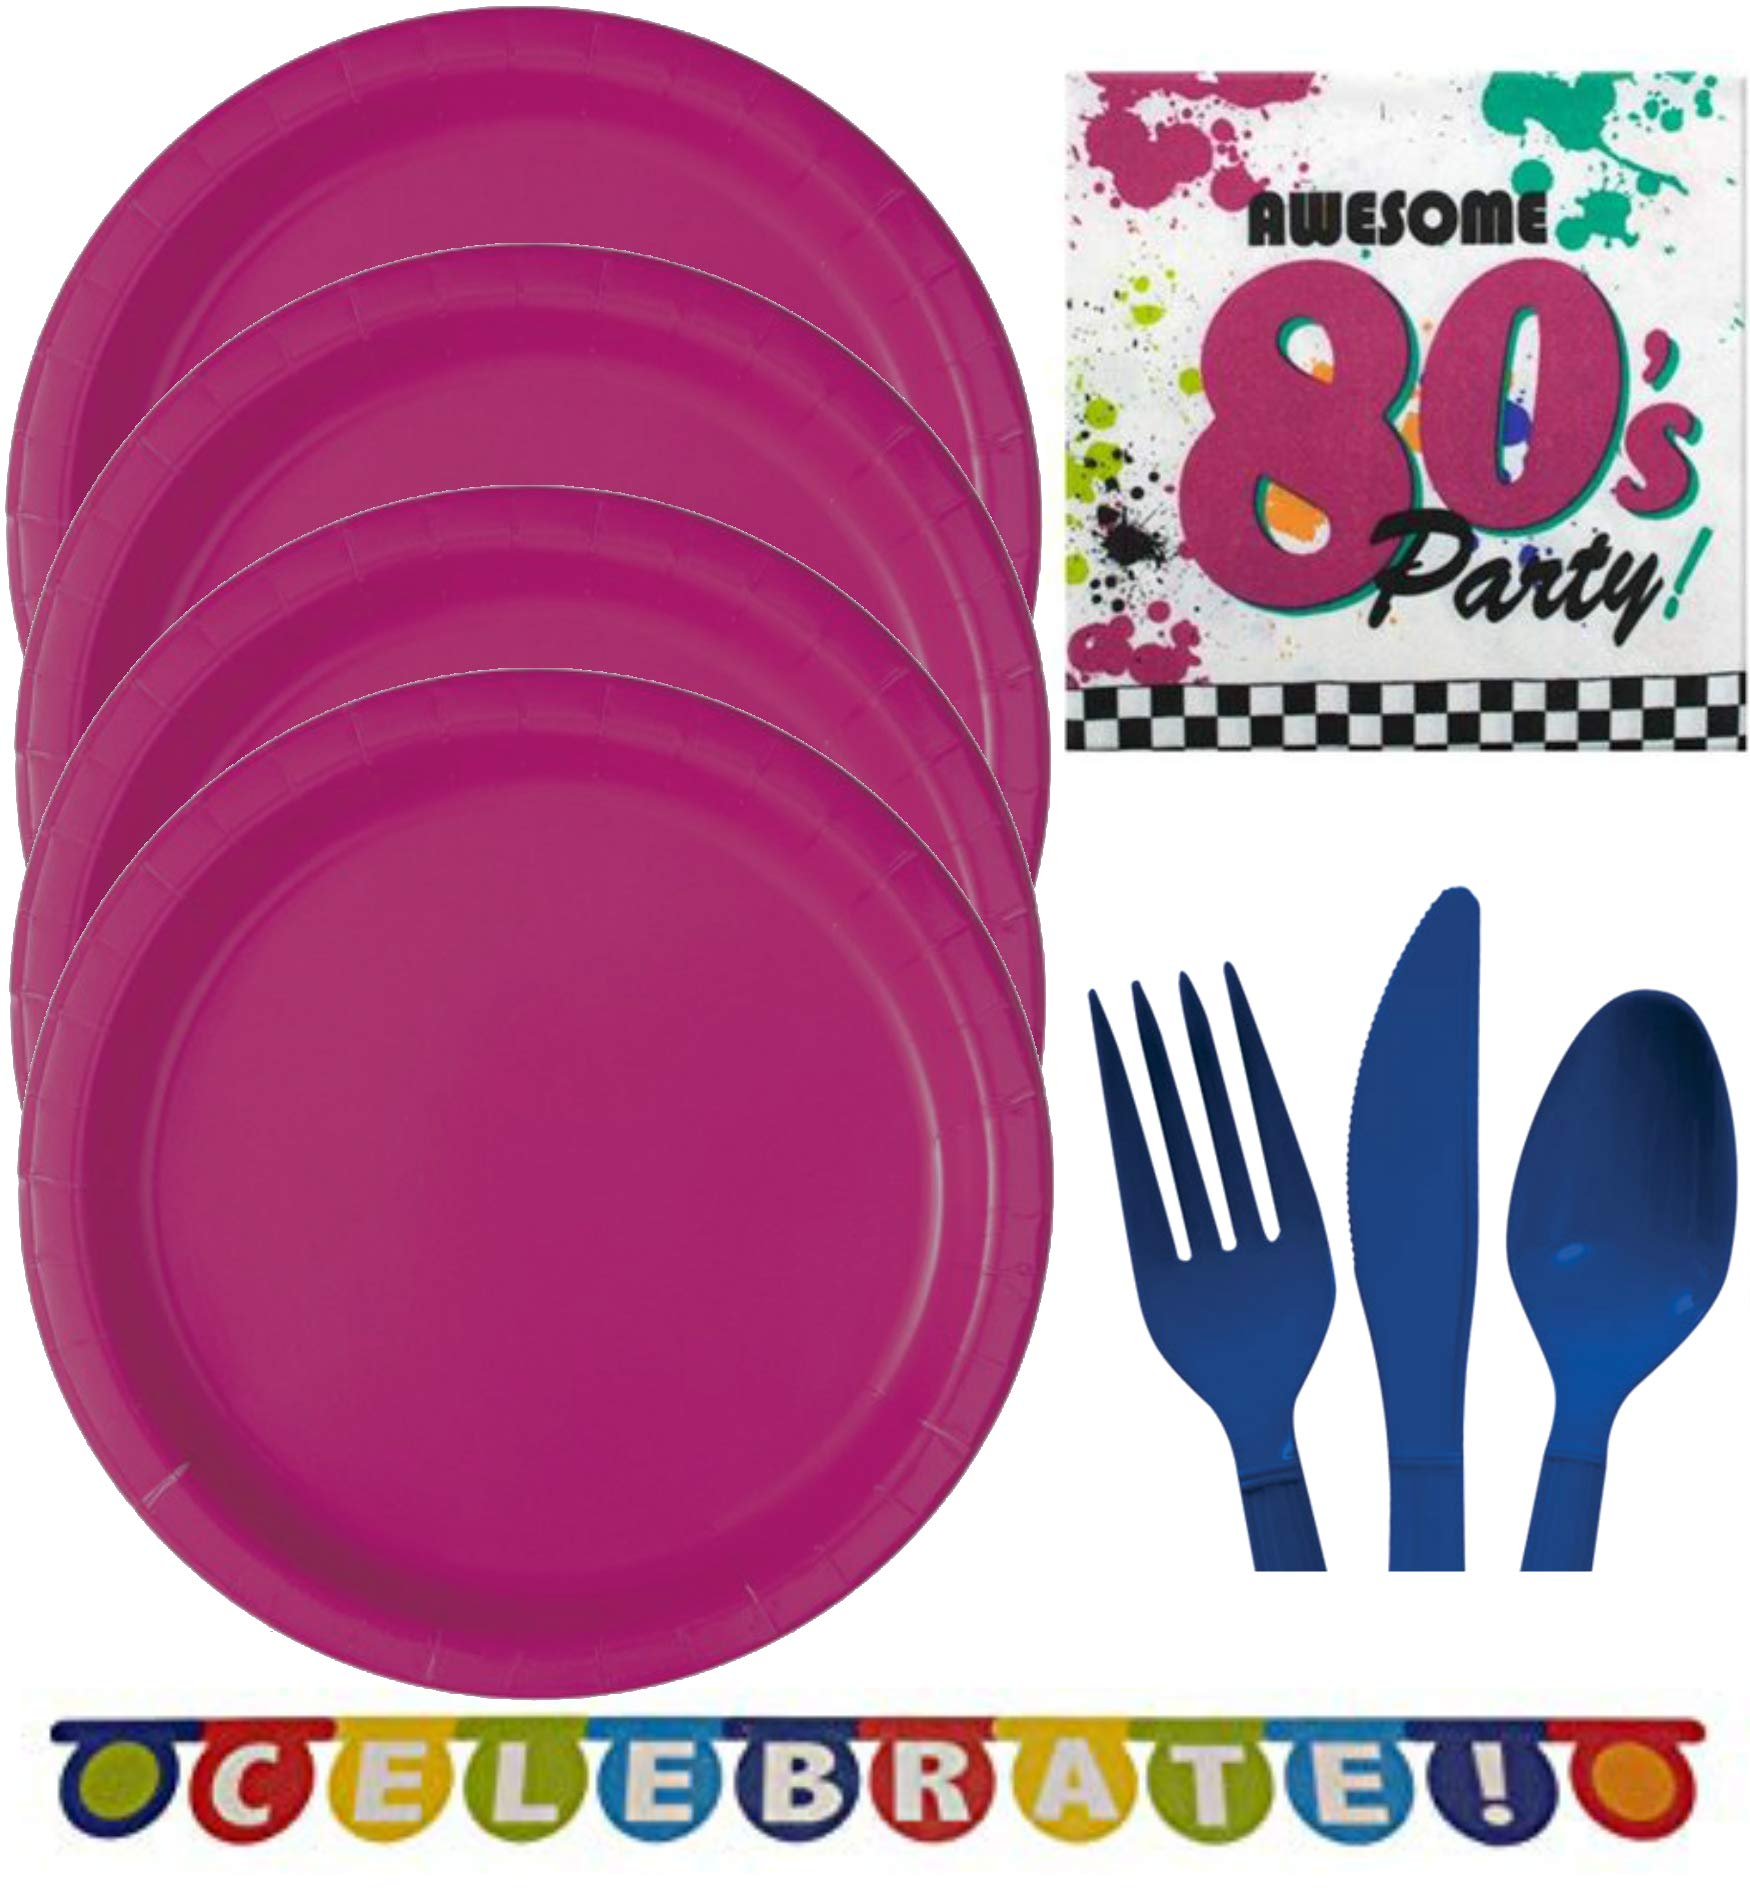 80s Party Supplies for 16 - Halloween, Birthday - Plates, Napkins, Cutlery, Eightees Games Idea Activity Page Party Pack